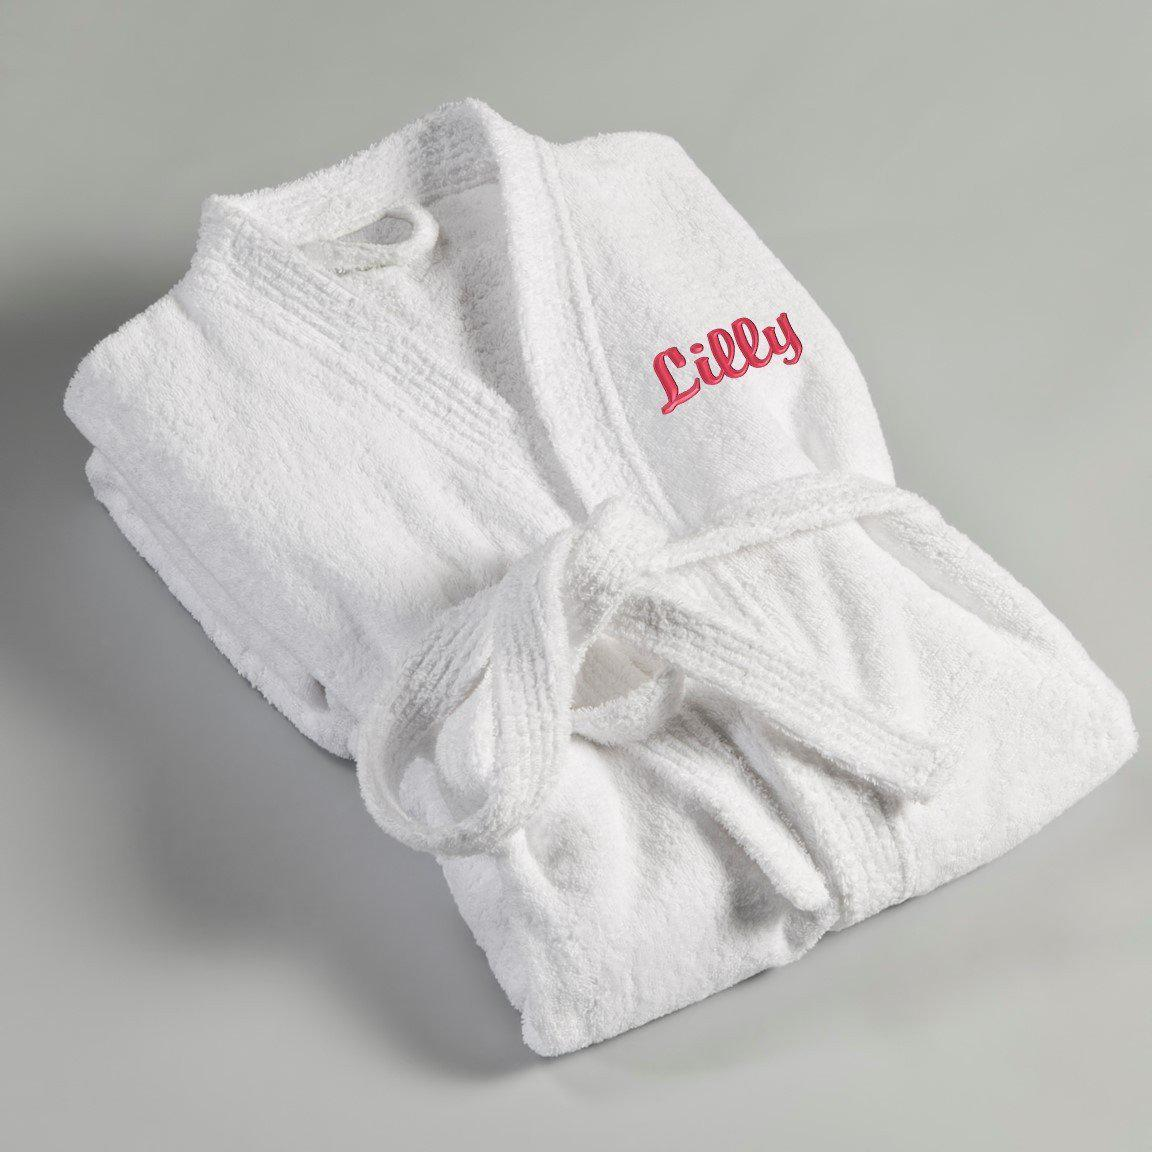 Personalized Women's Embroidered Bathrobe